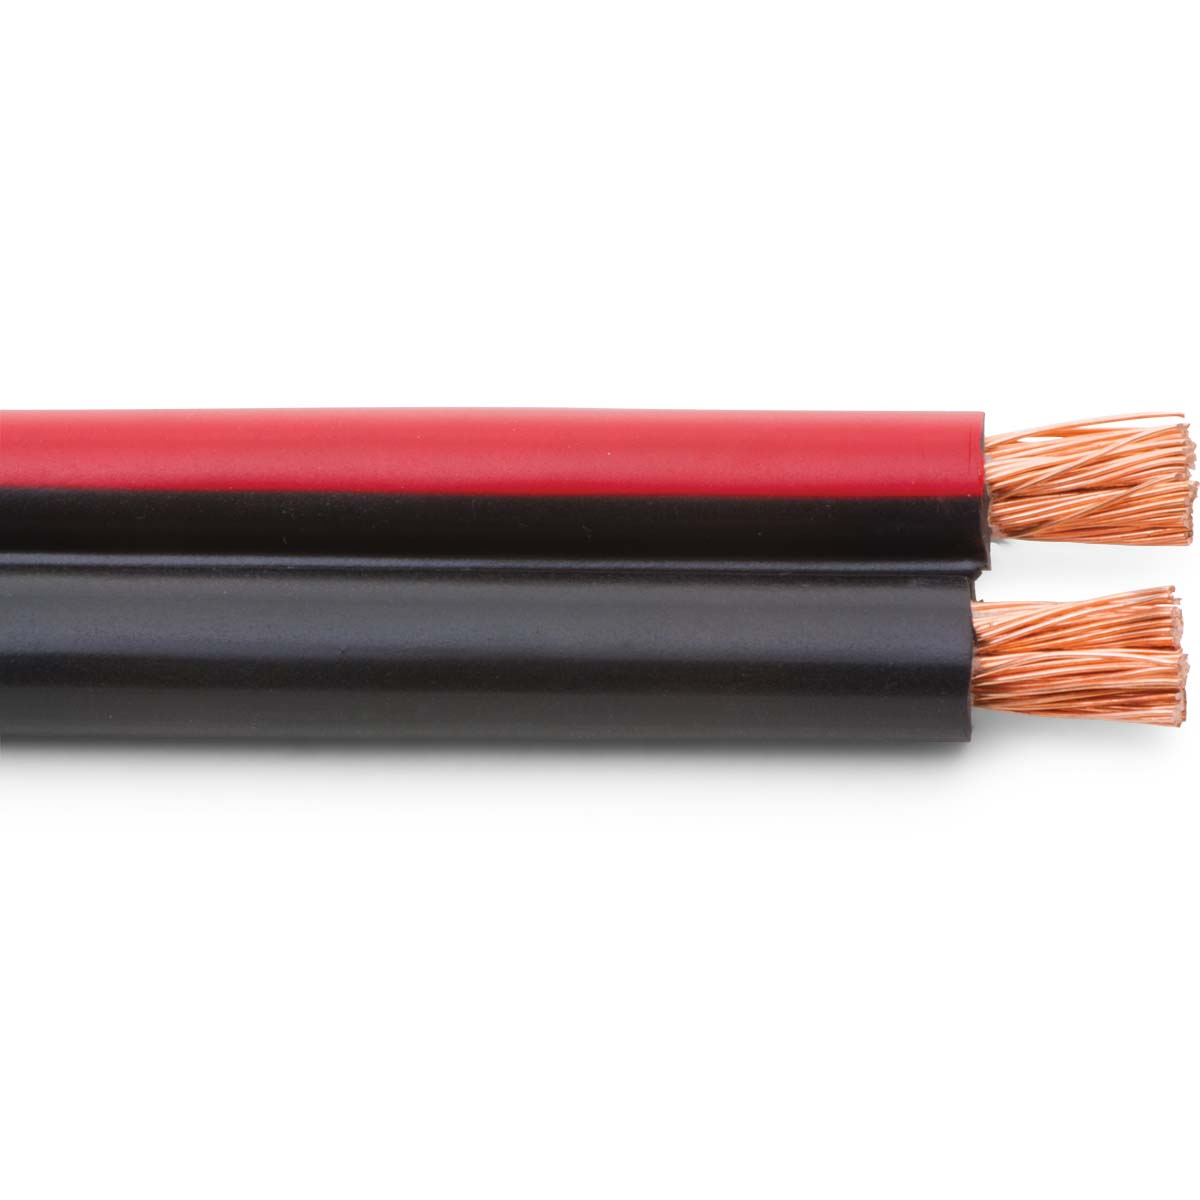 4 Gauge Duplex Battery Cable - Kimball Midwest